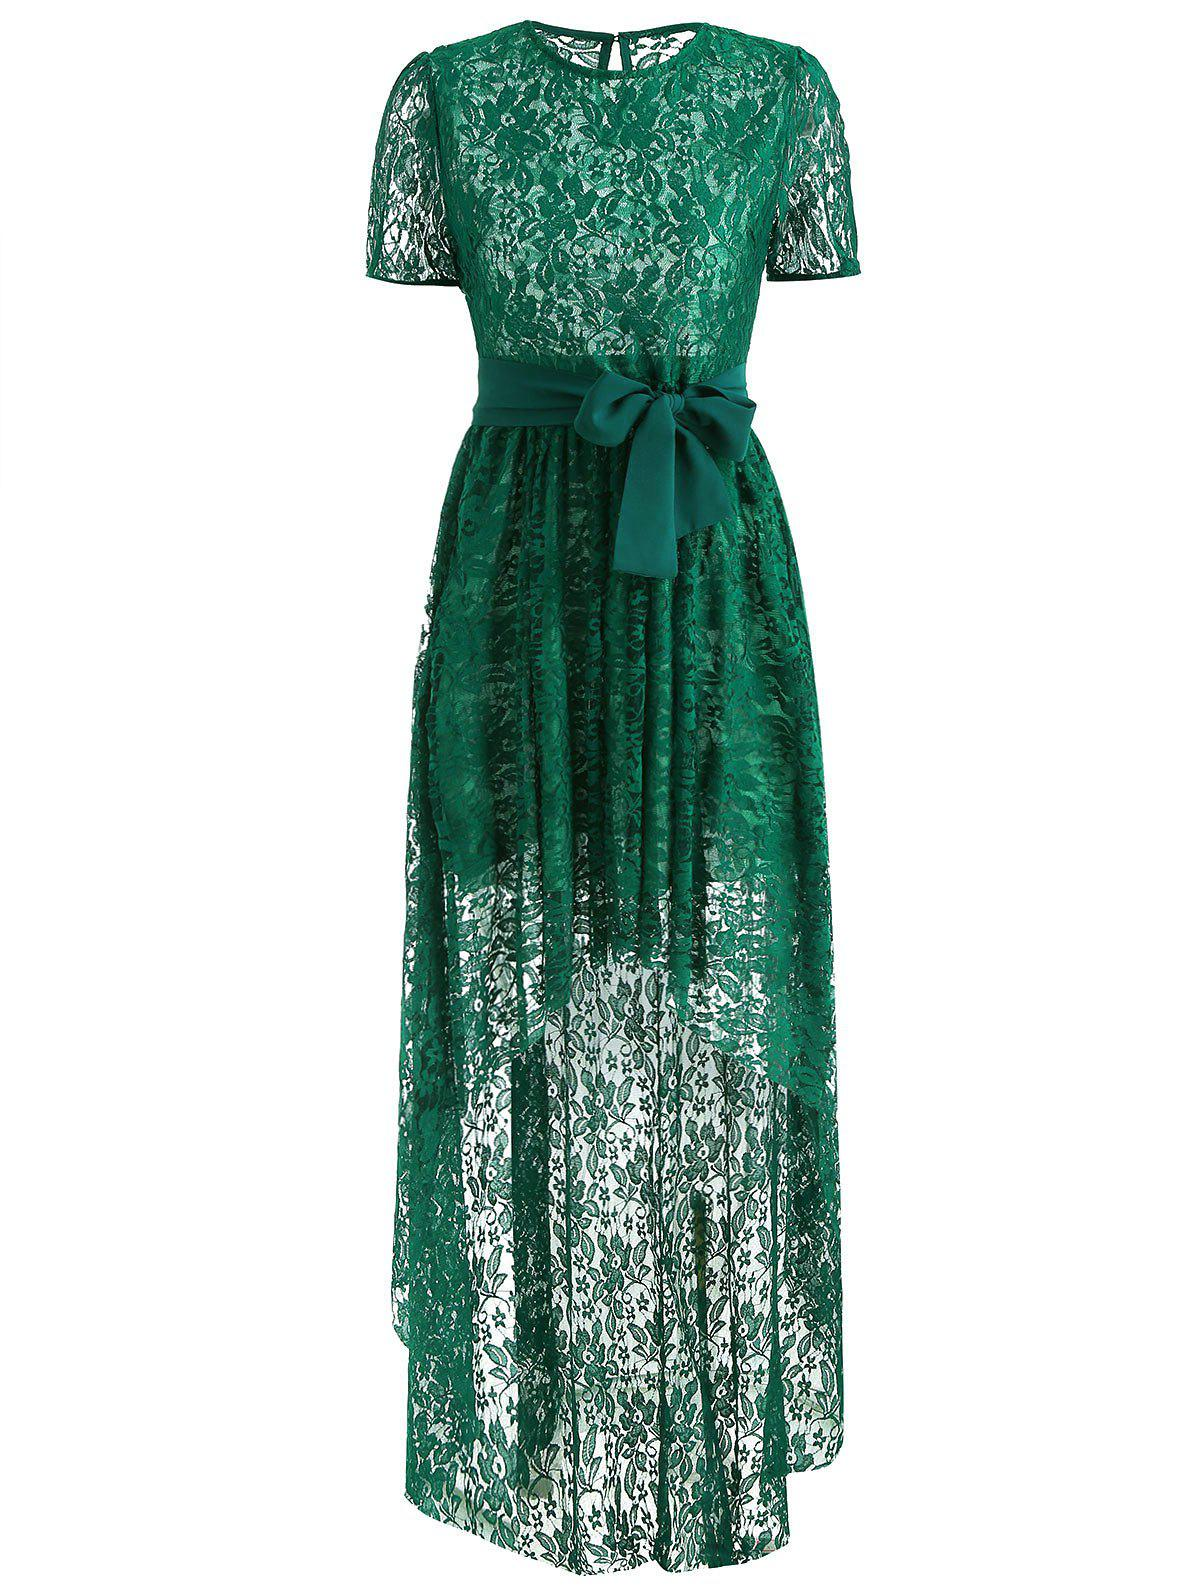 Chic Belted Lace High Low Hem Dress